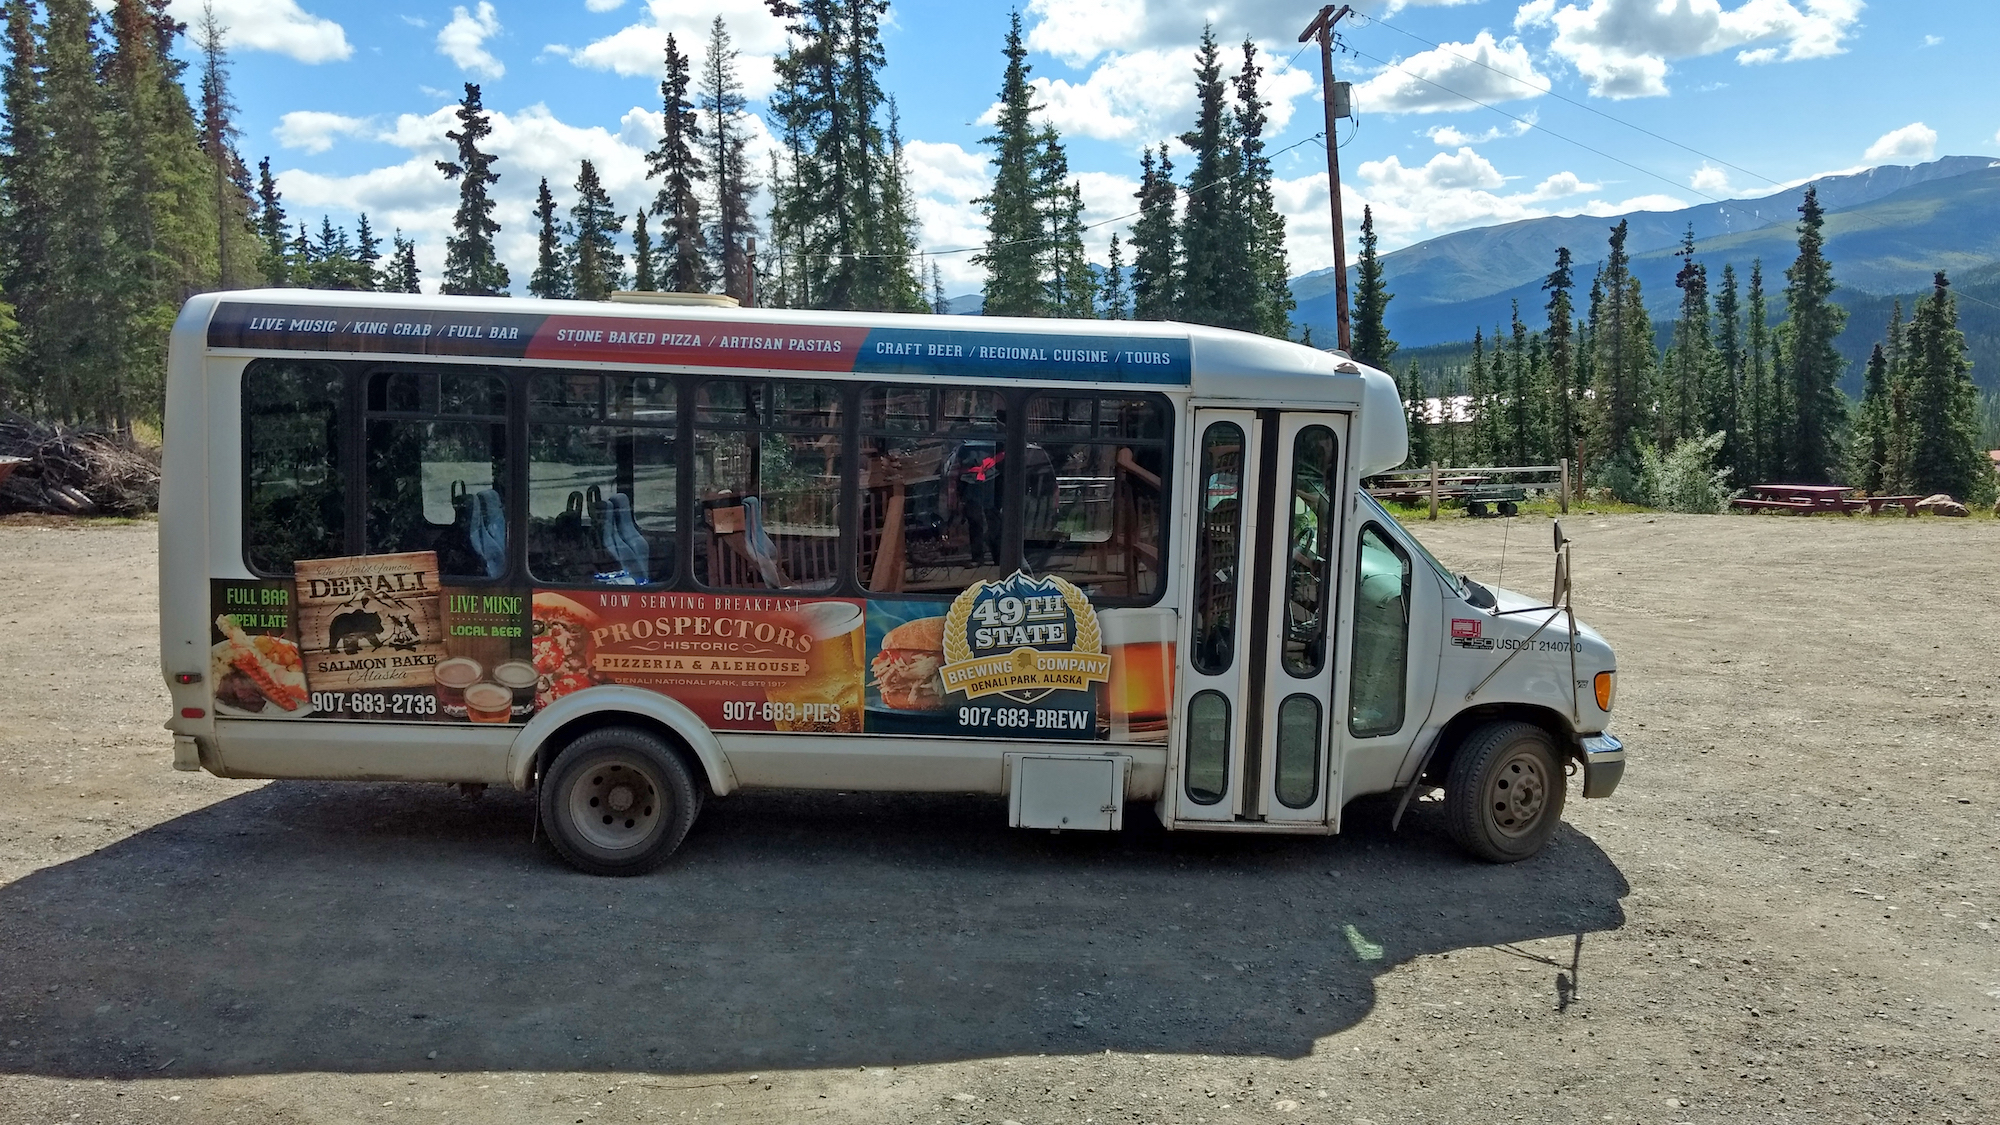 dine denali shuttle salmon bake prospectors northern hospitality group 49th state brewing